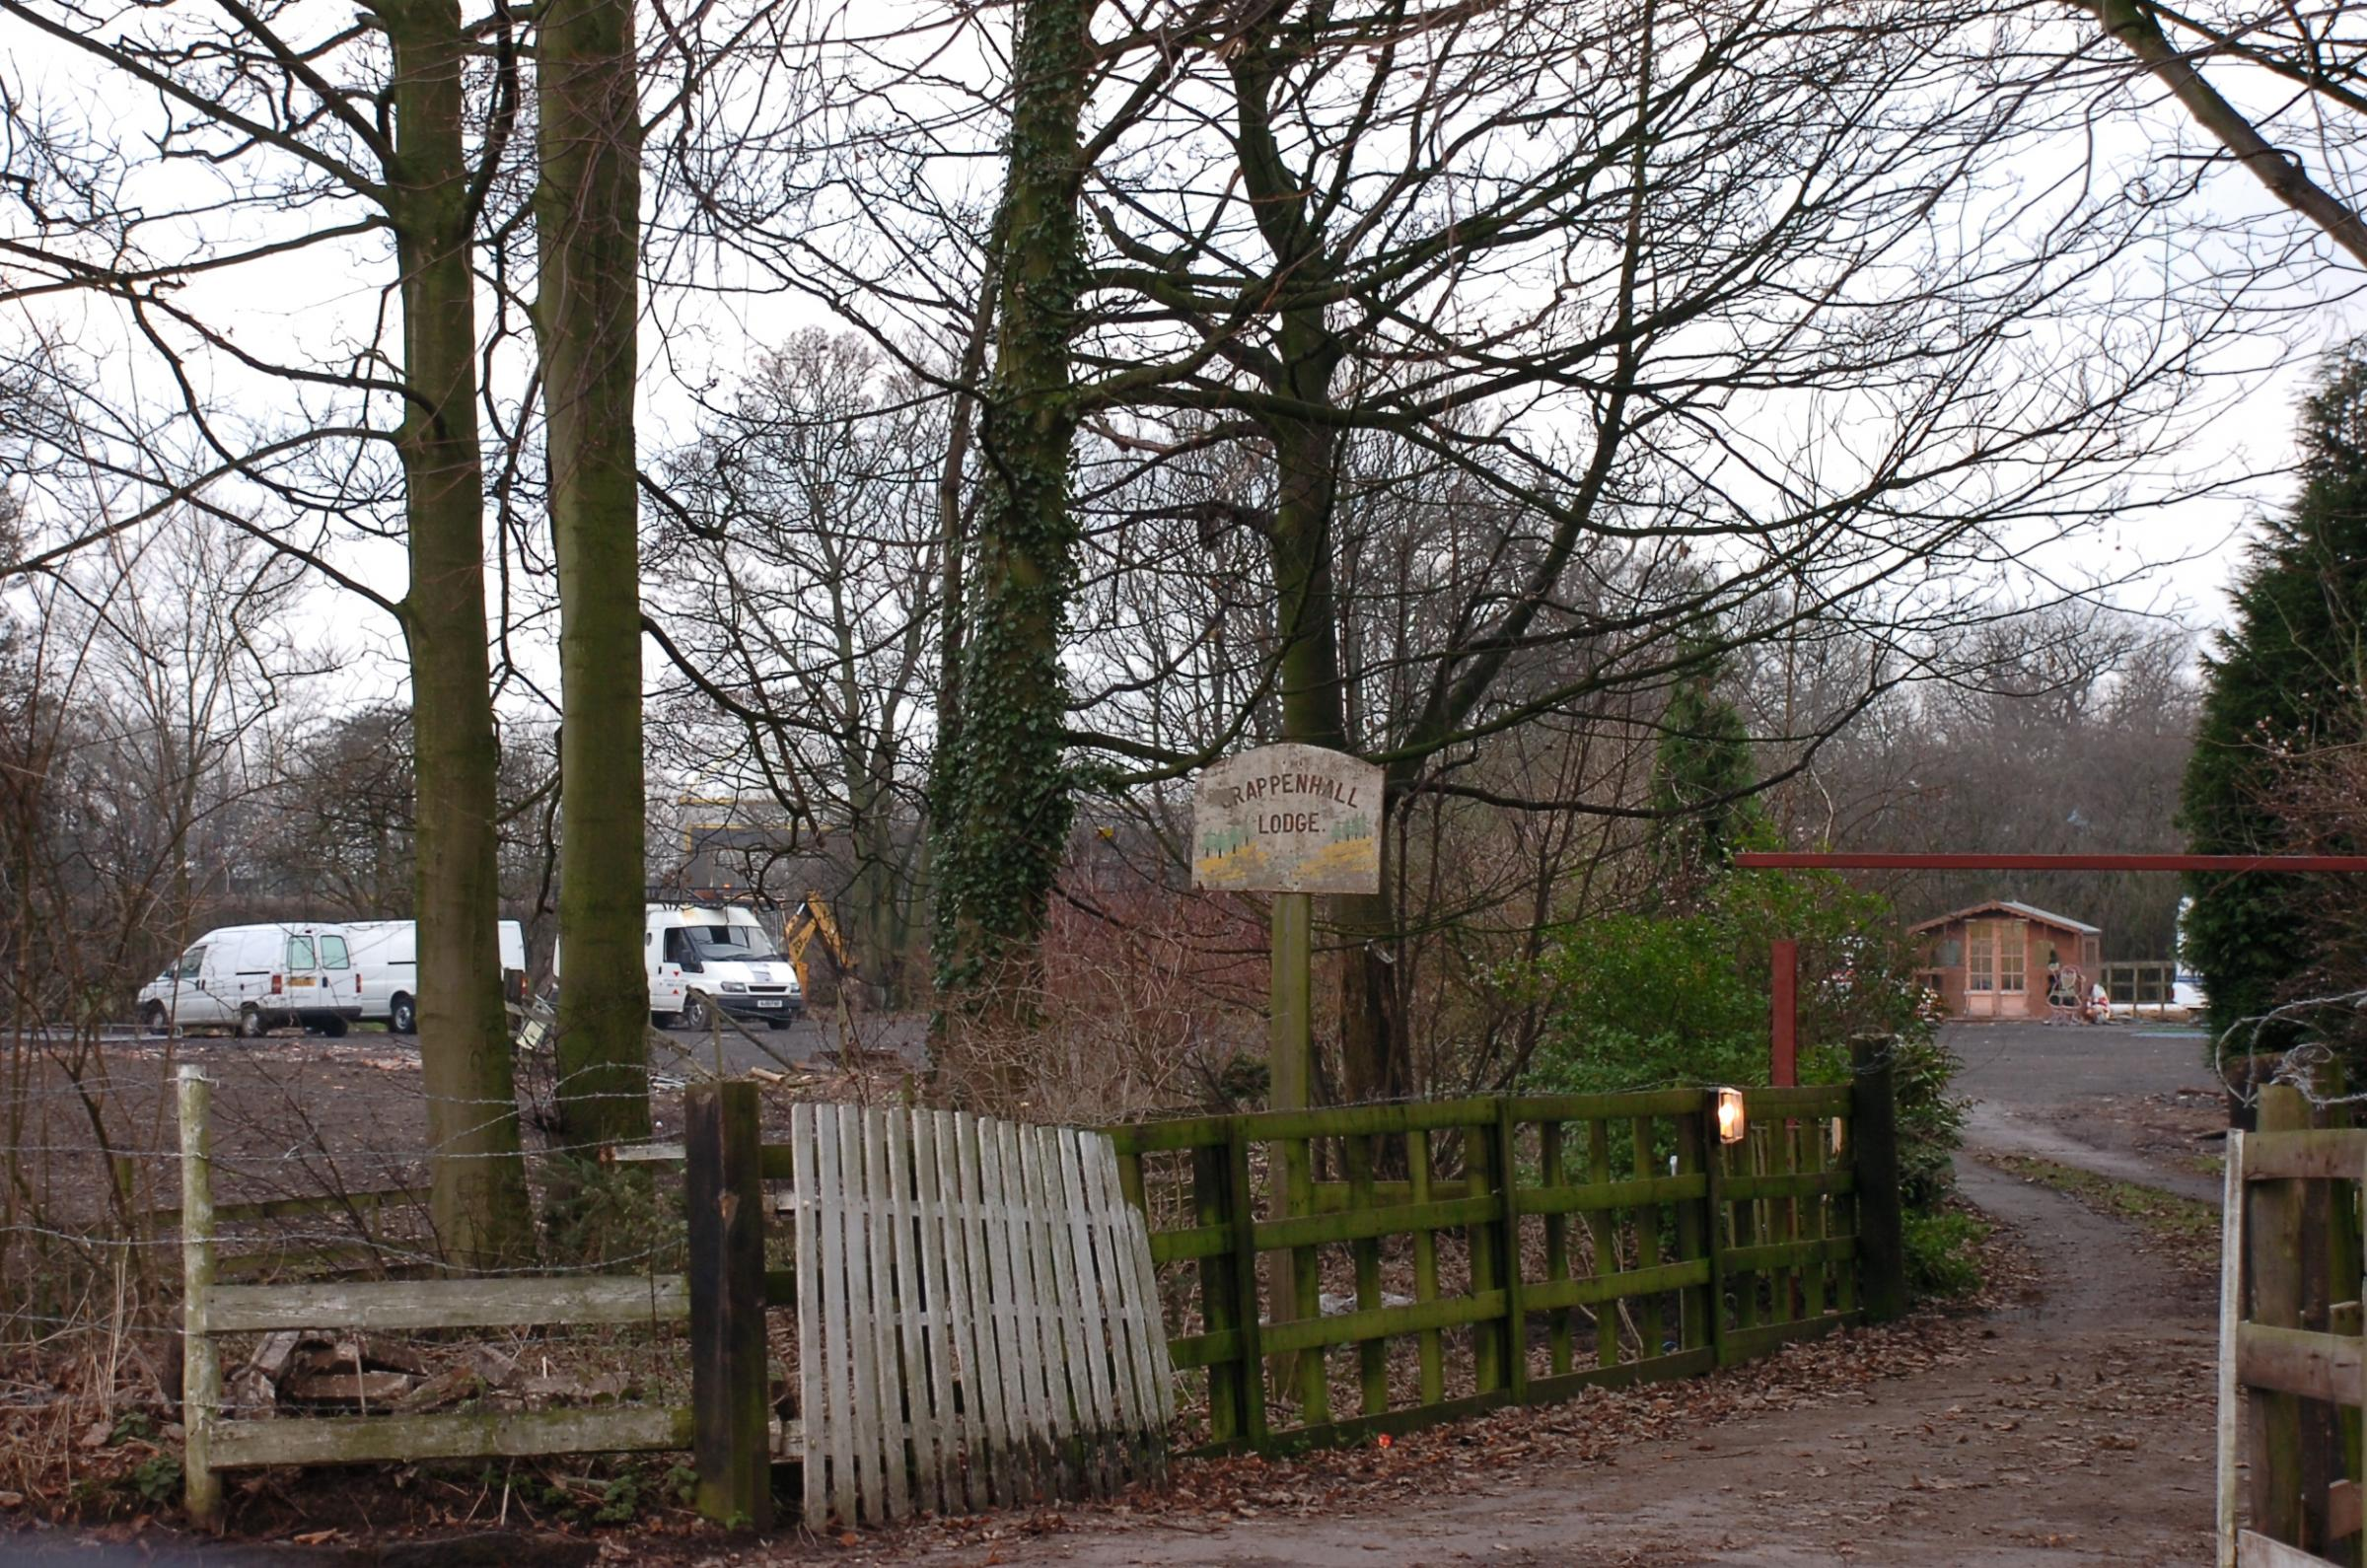 The caravan site in Grappenhall